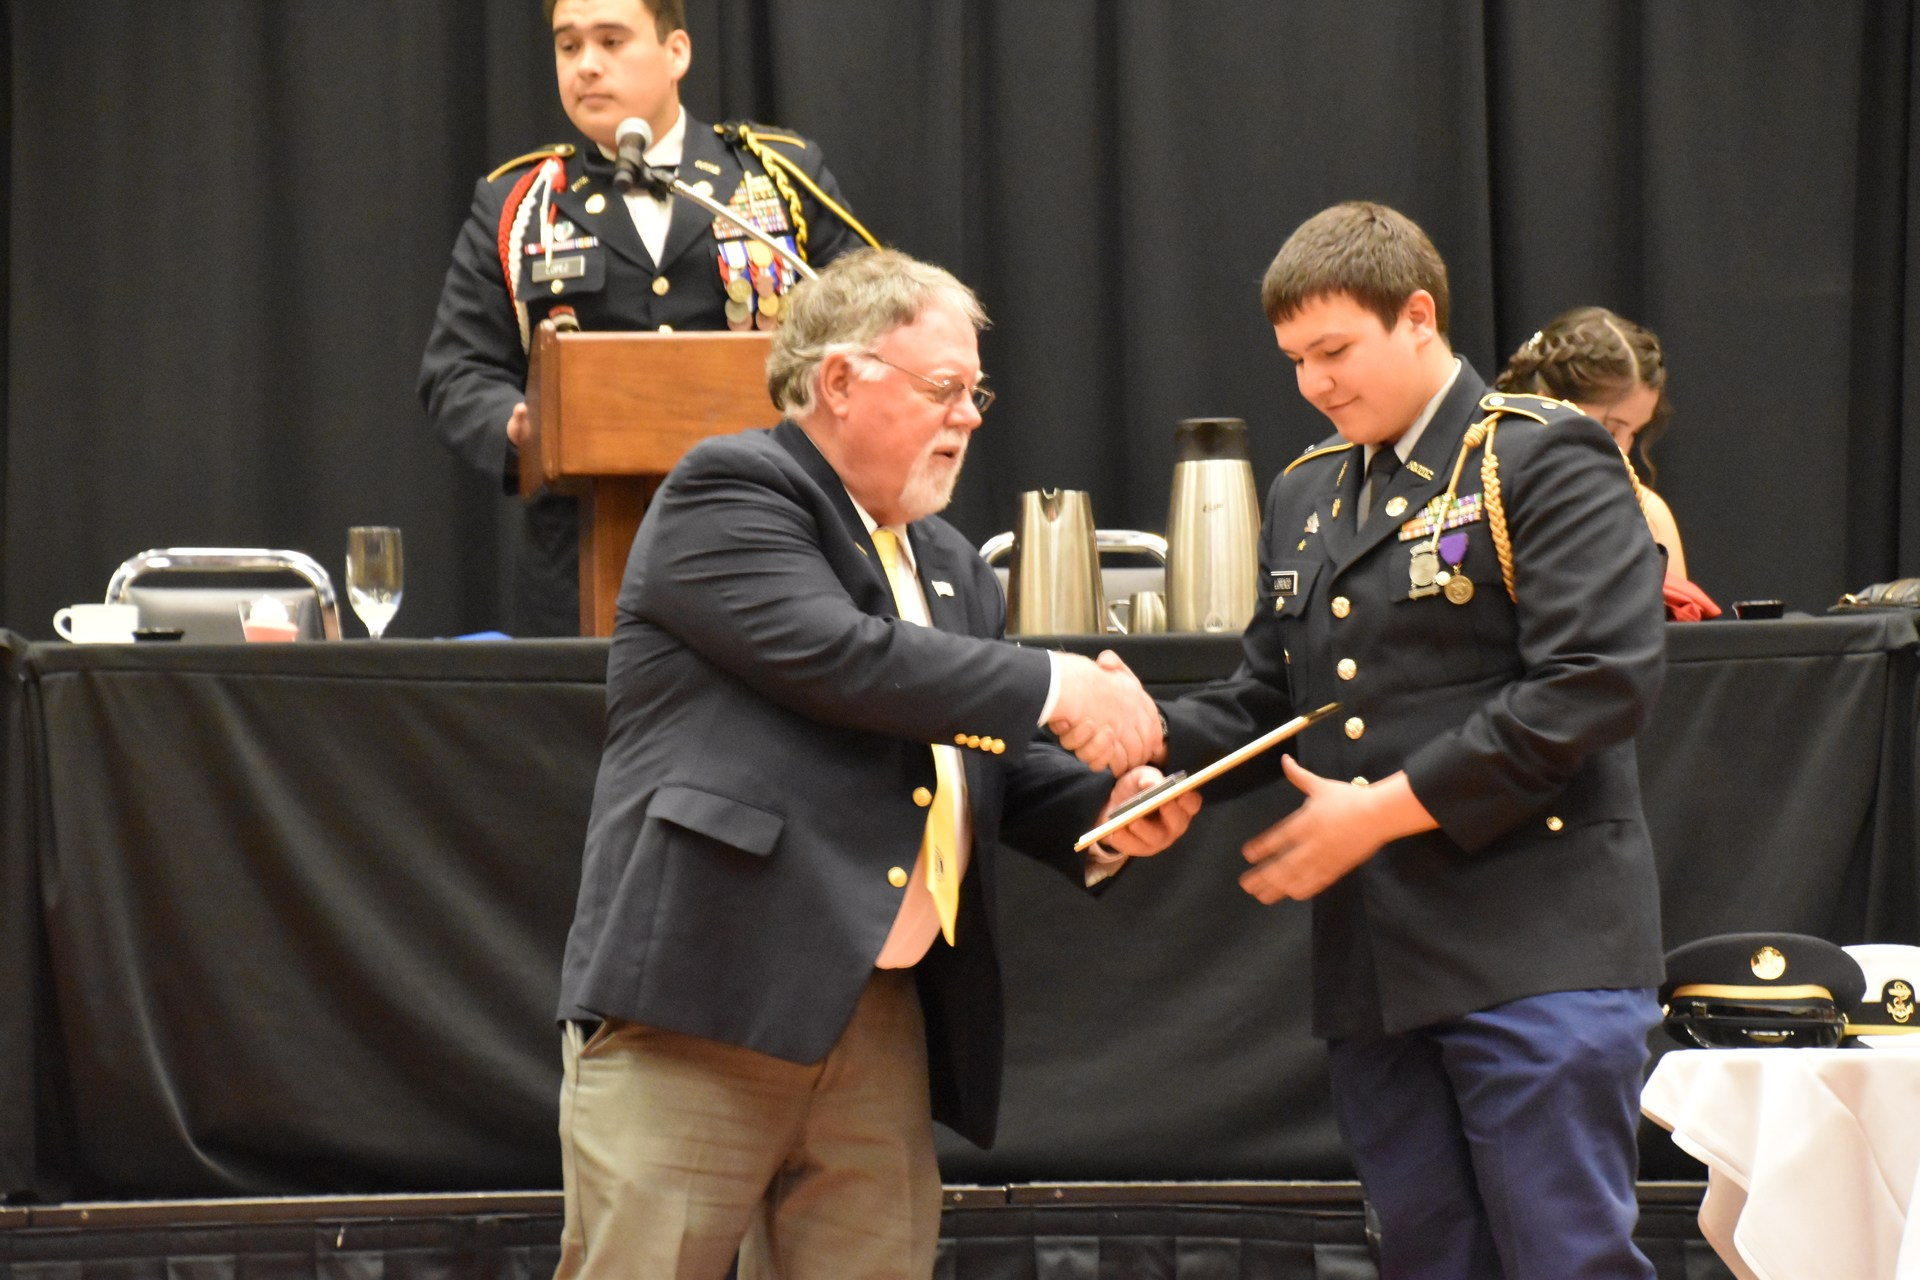 Student receiving award.